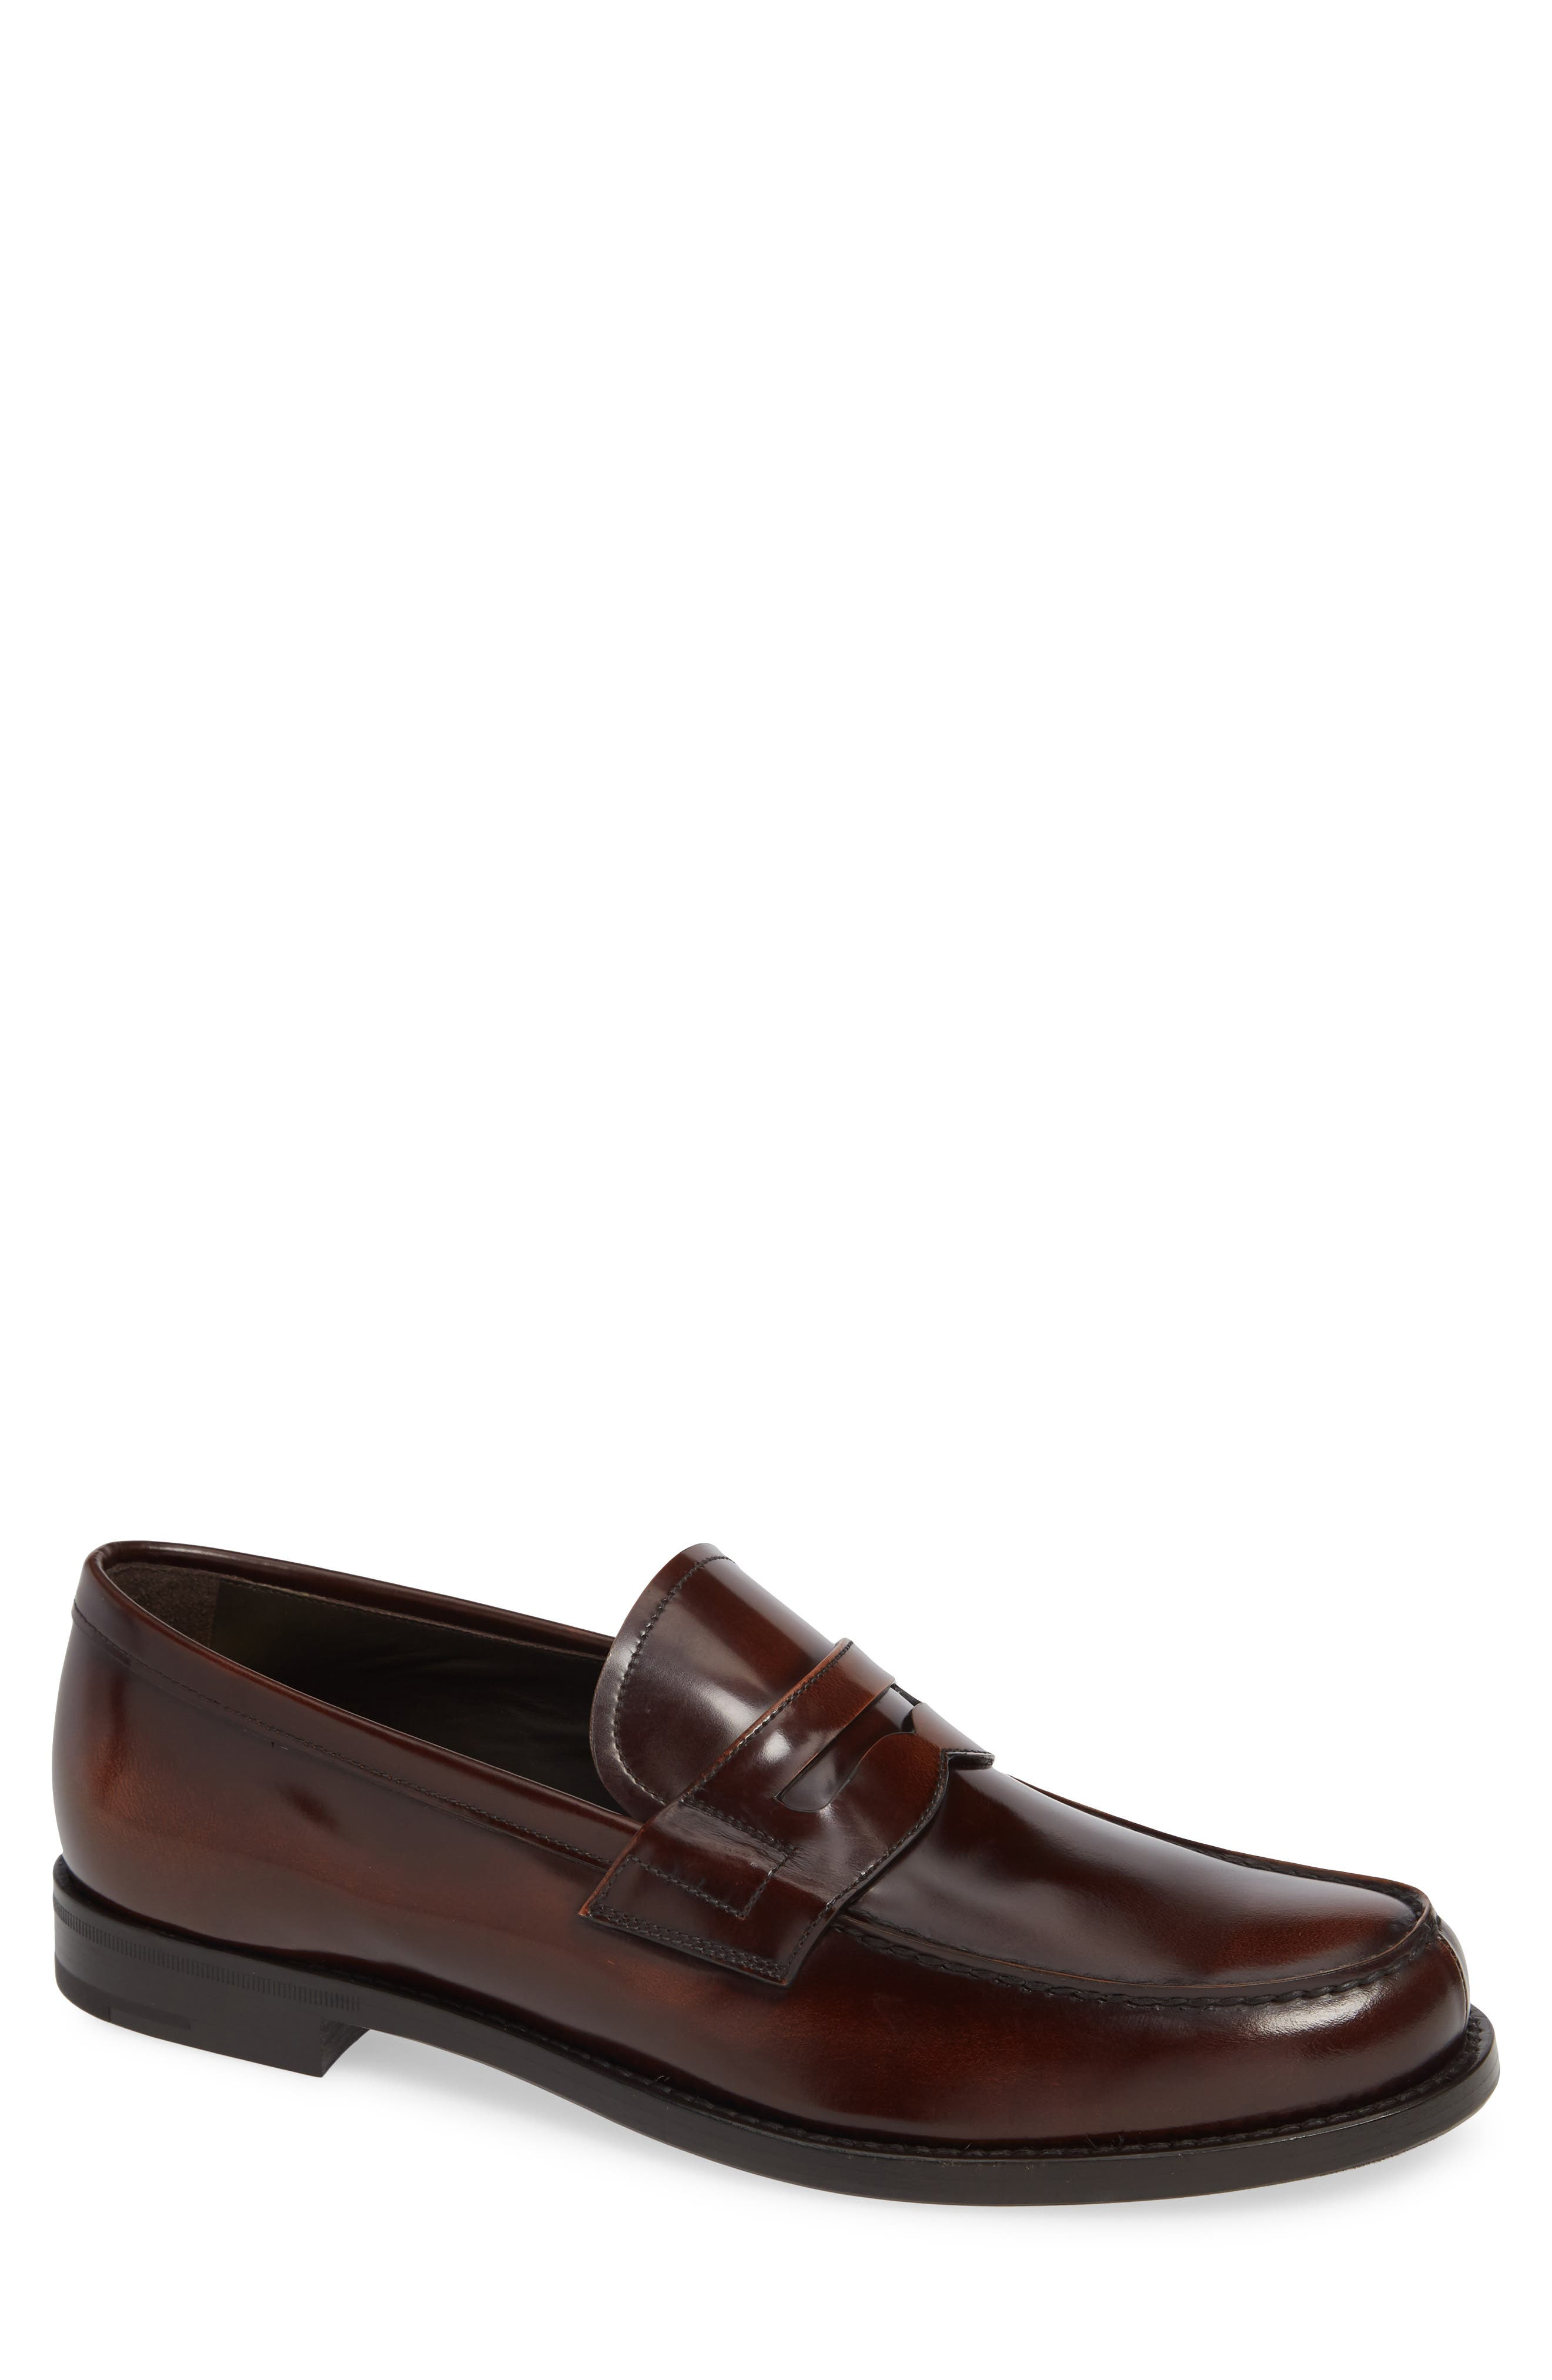 Penny Loafer,                         Main,                         color, TOBACCO